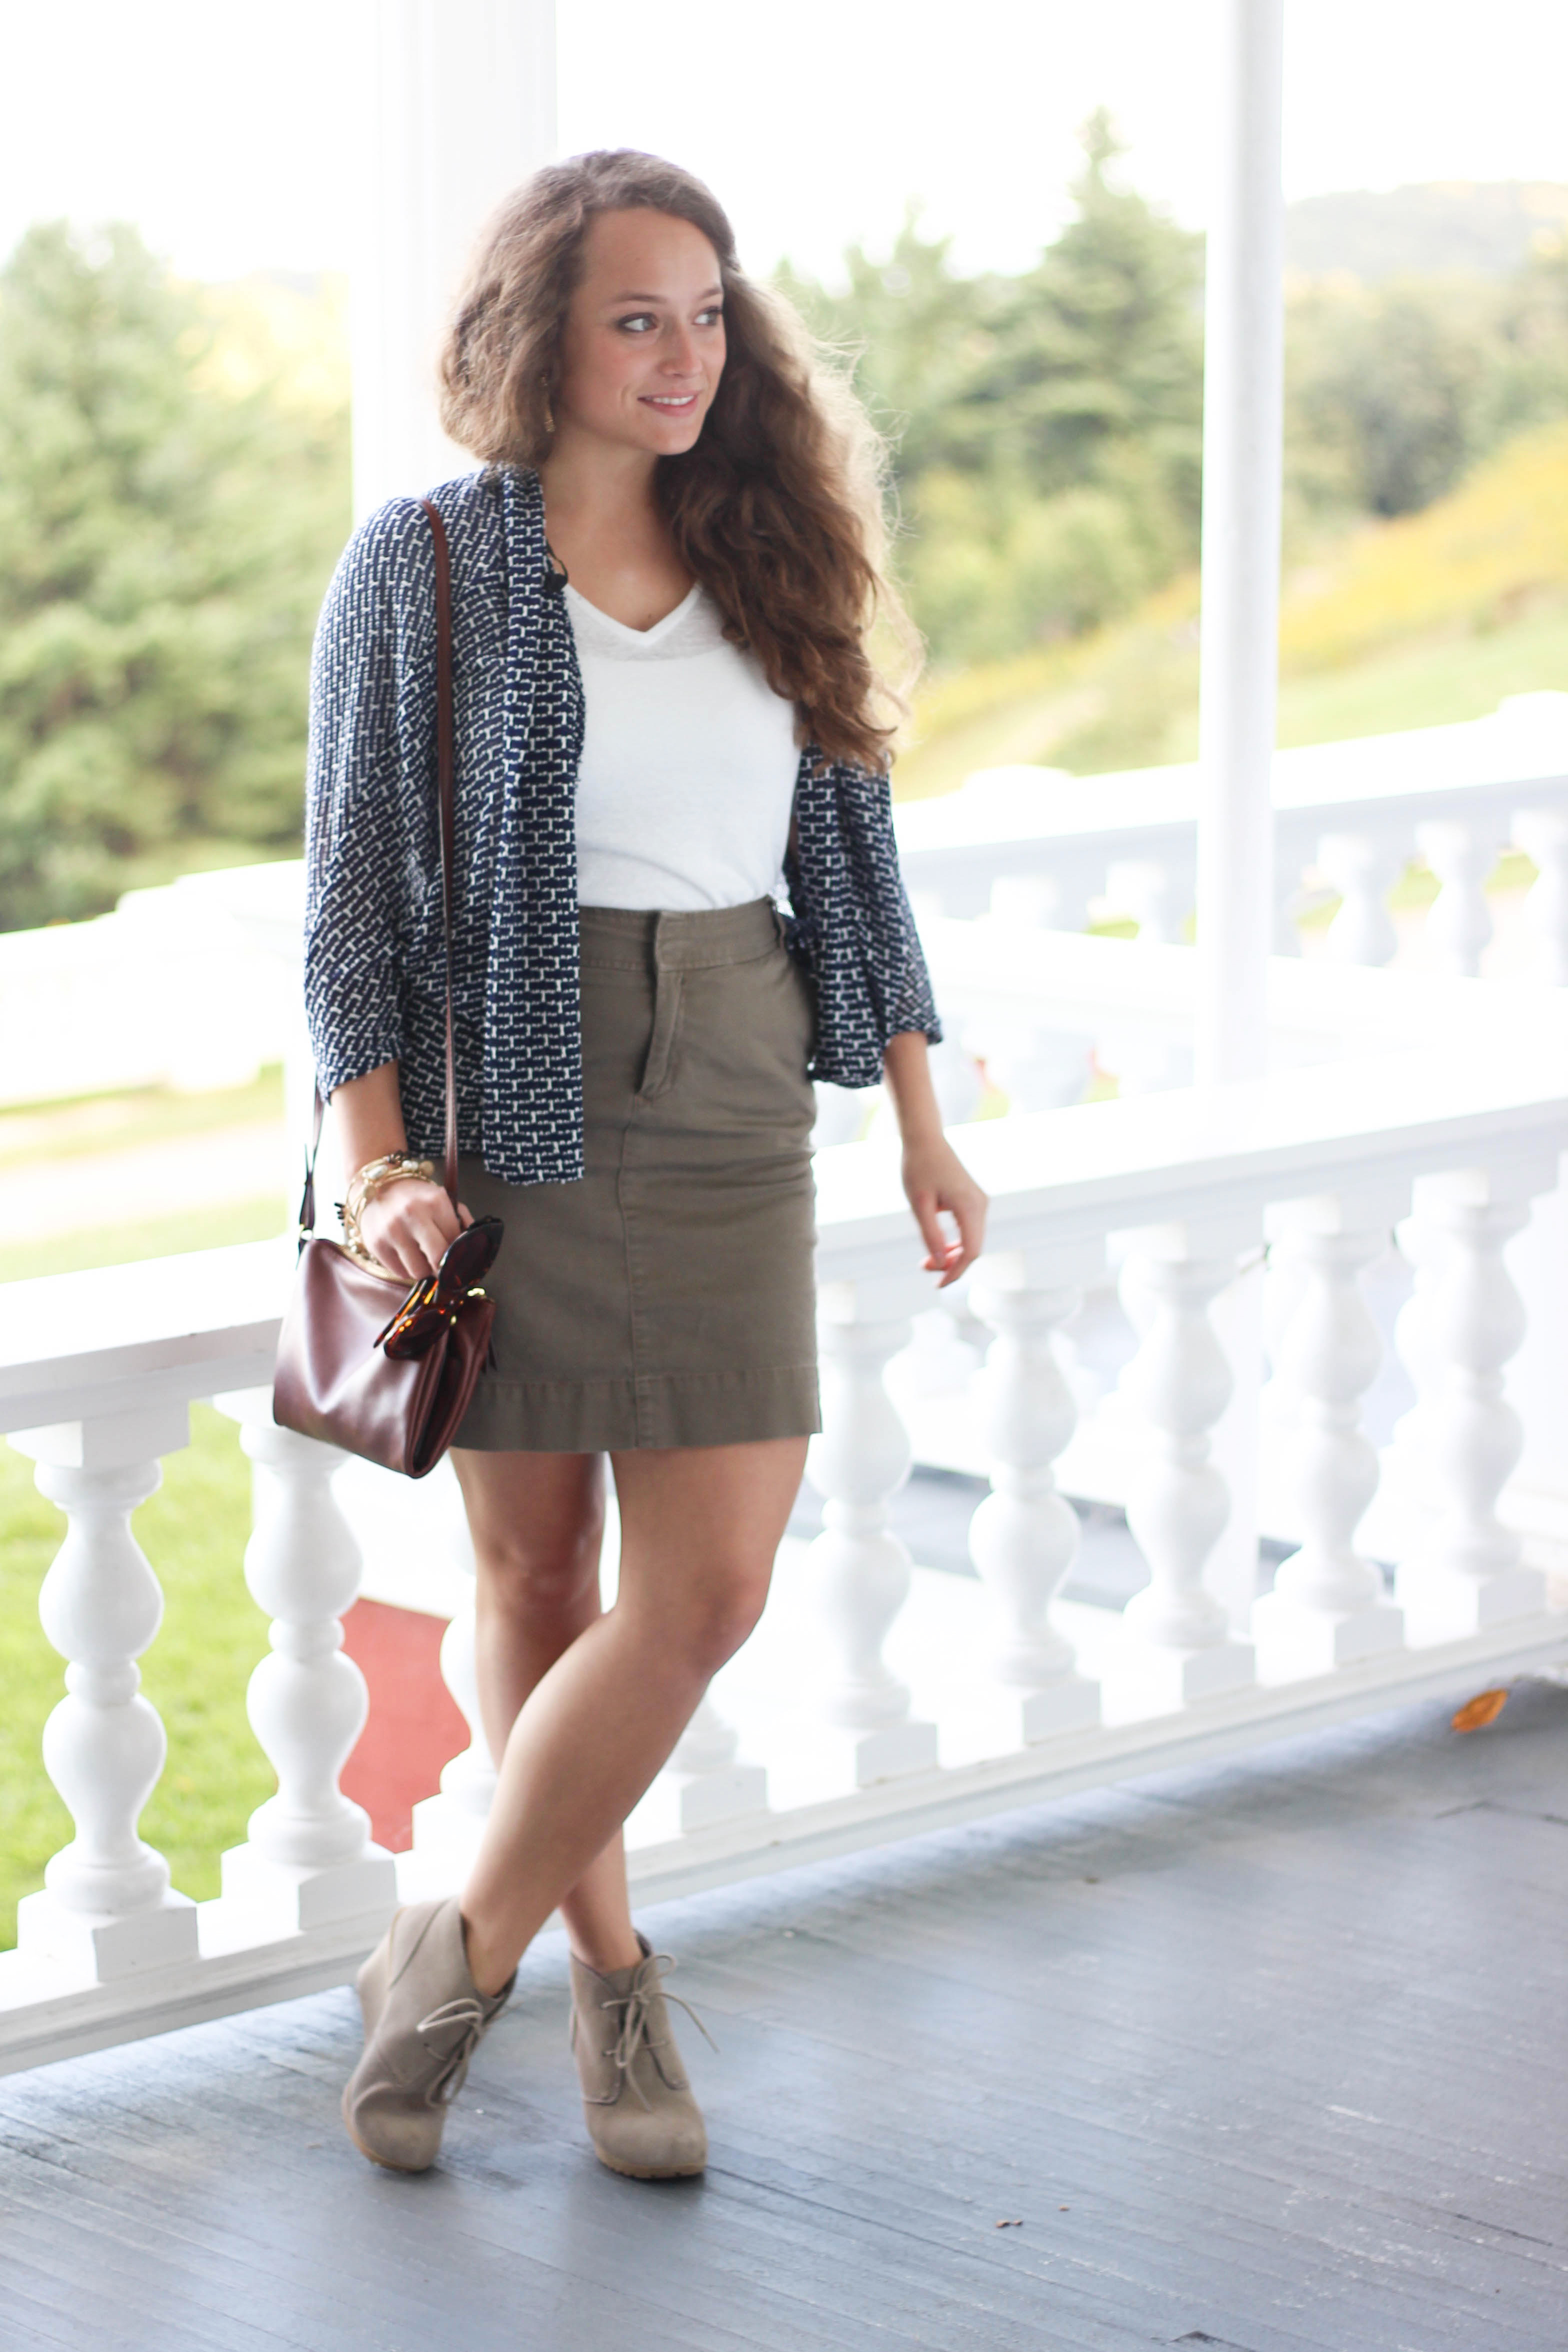 Khaki Skirt, White V Neck Shirt, Navy and White Cardigan, and TJMaxx Booties